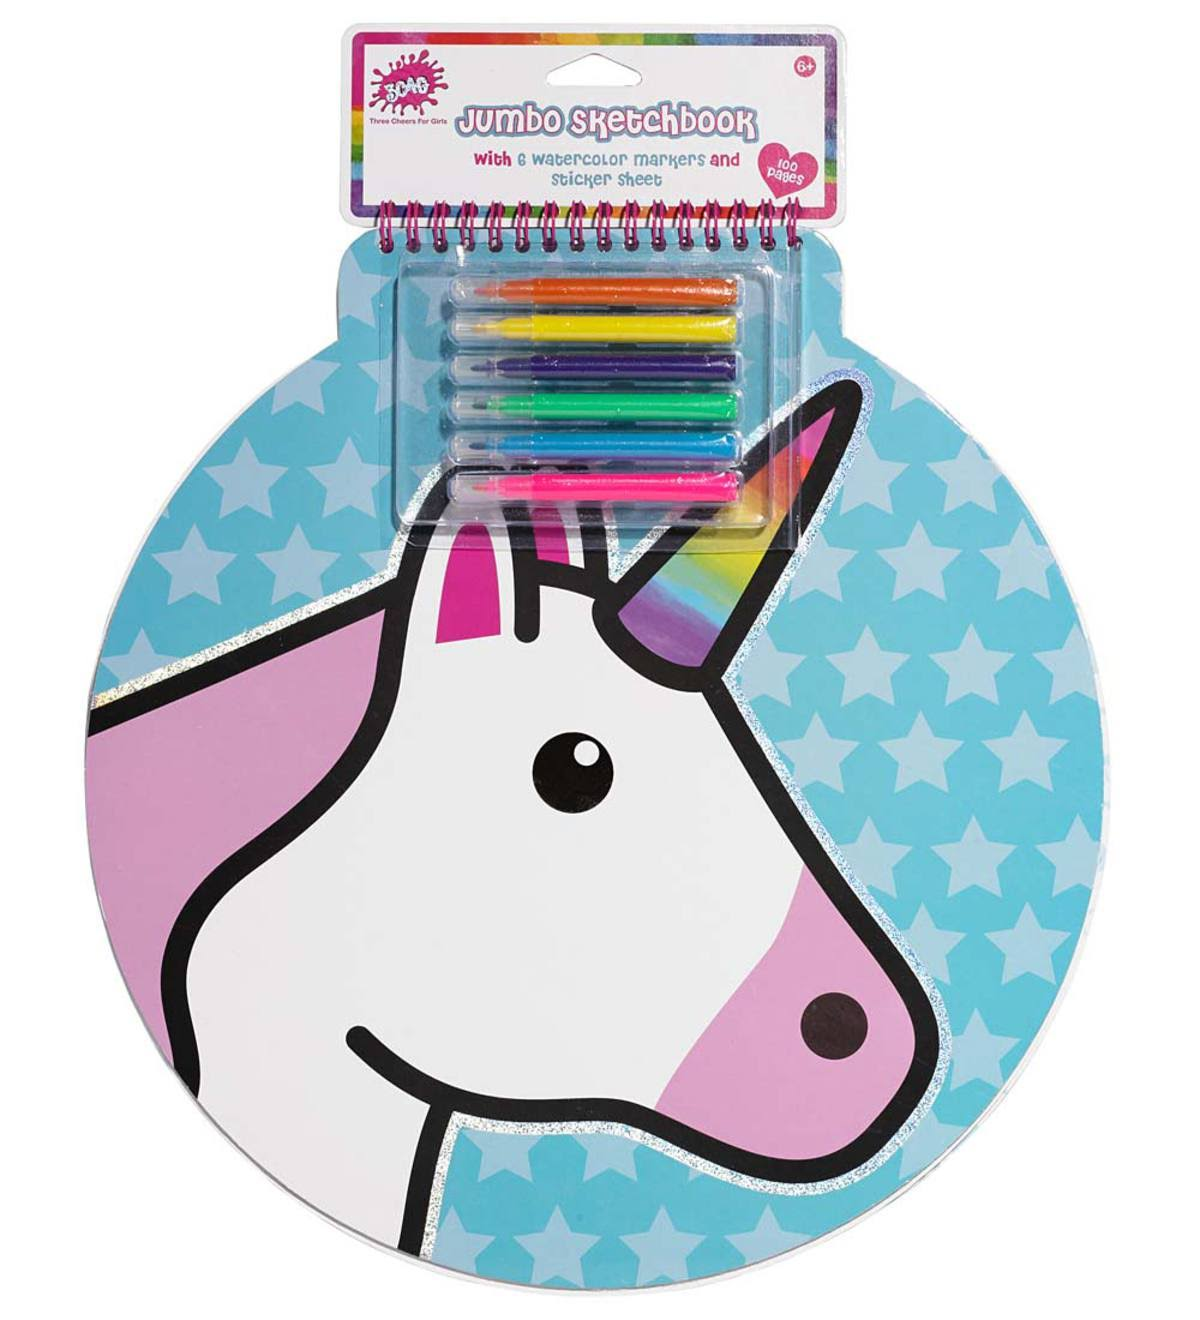 3C4G Unicorn Jumbo Sketch Book